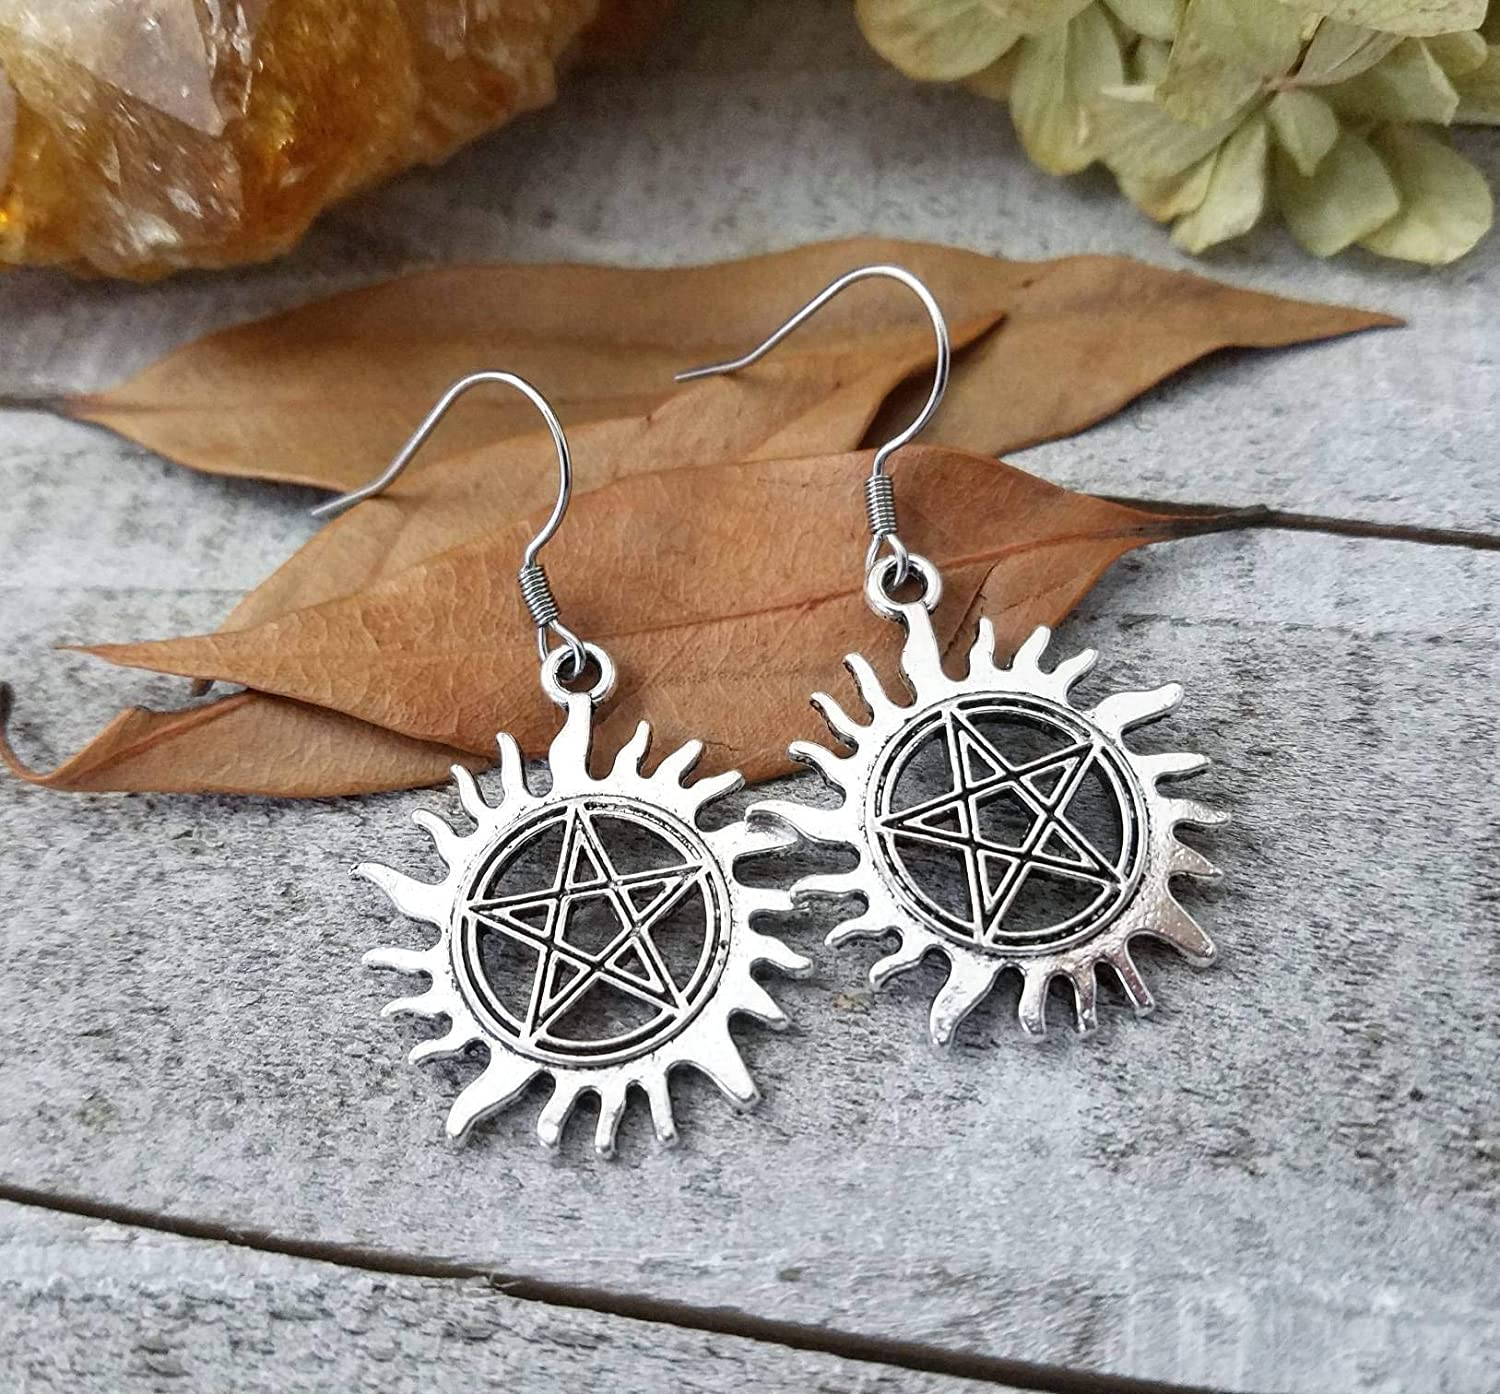 THE ORIGINAL Supernatural Anti possession sigil earrings